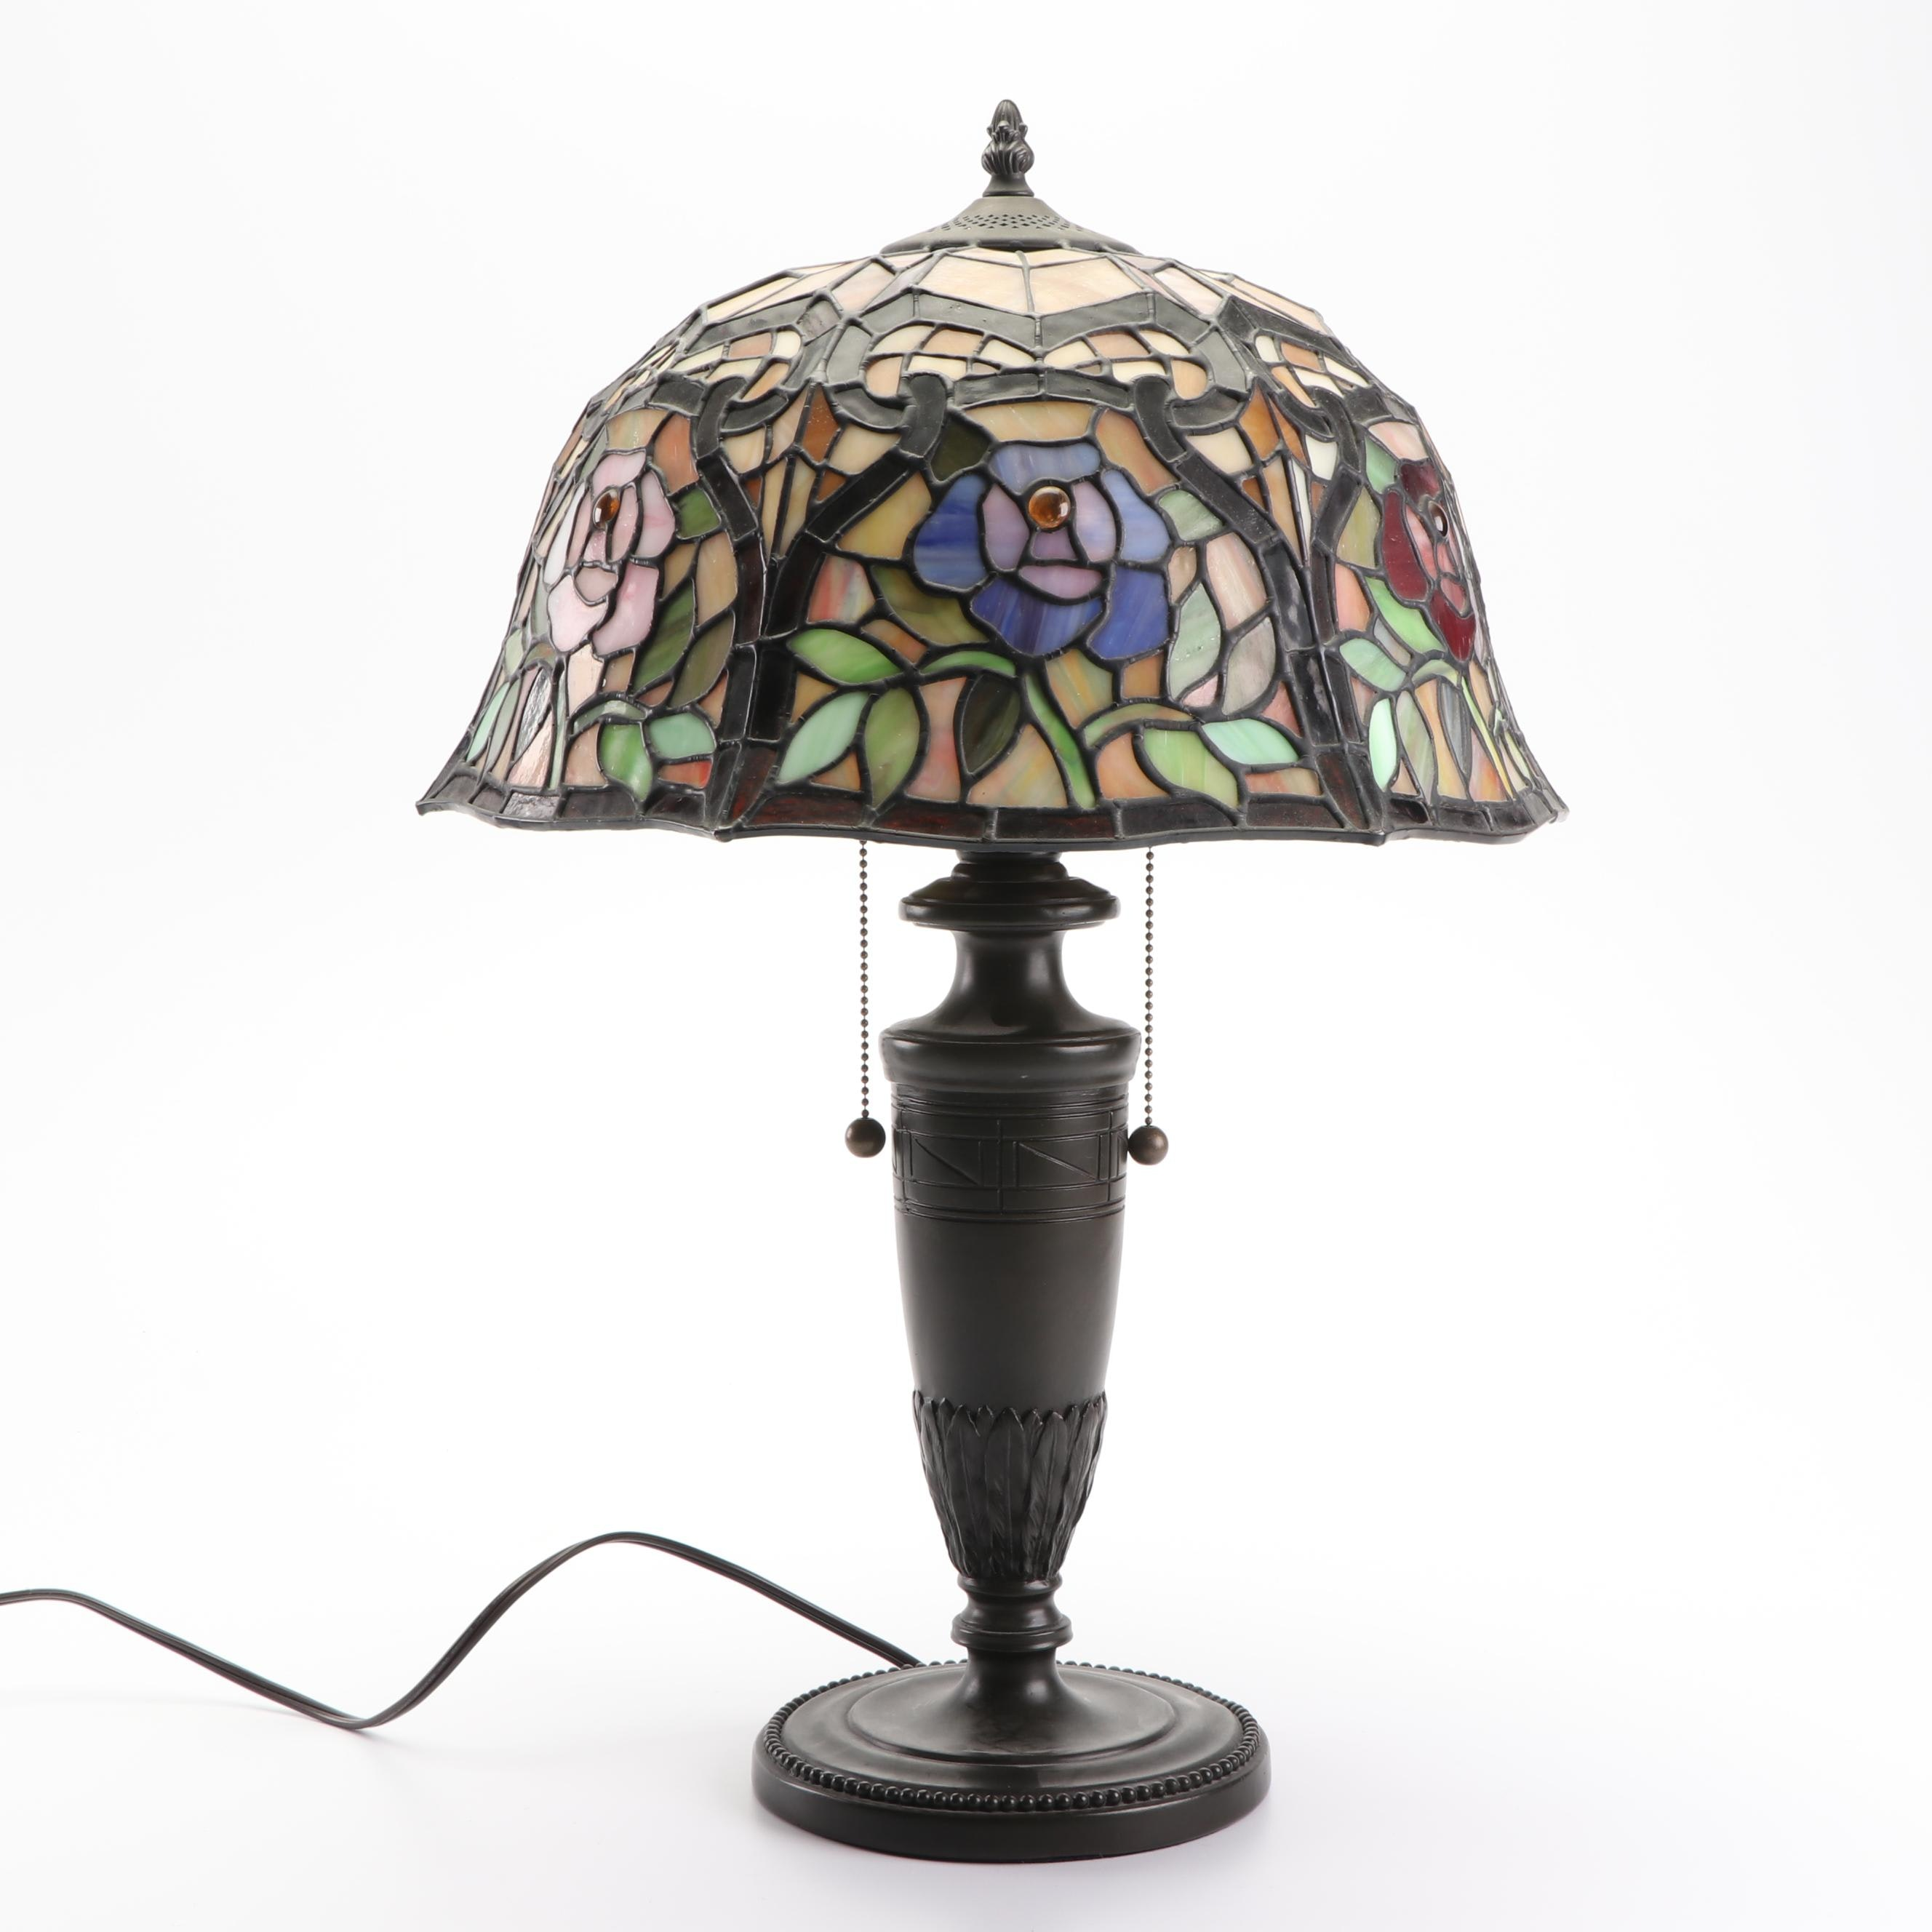 Metal Table Lamp with Domed Floral Stained Glass Shade